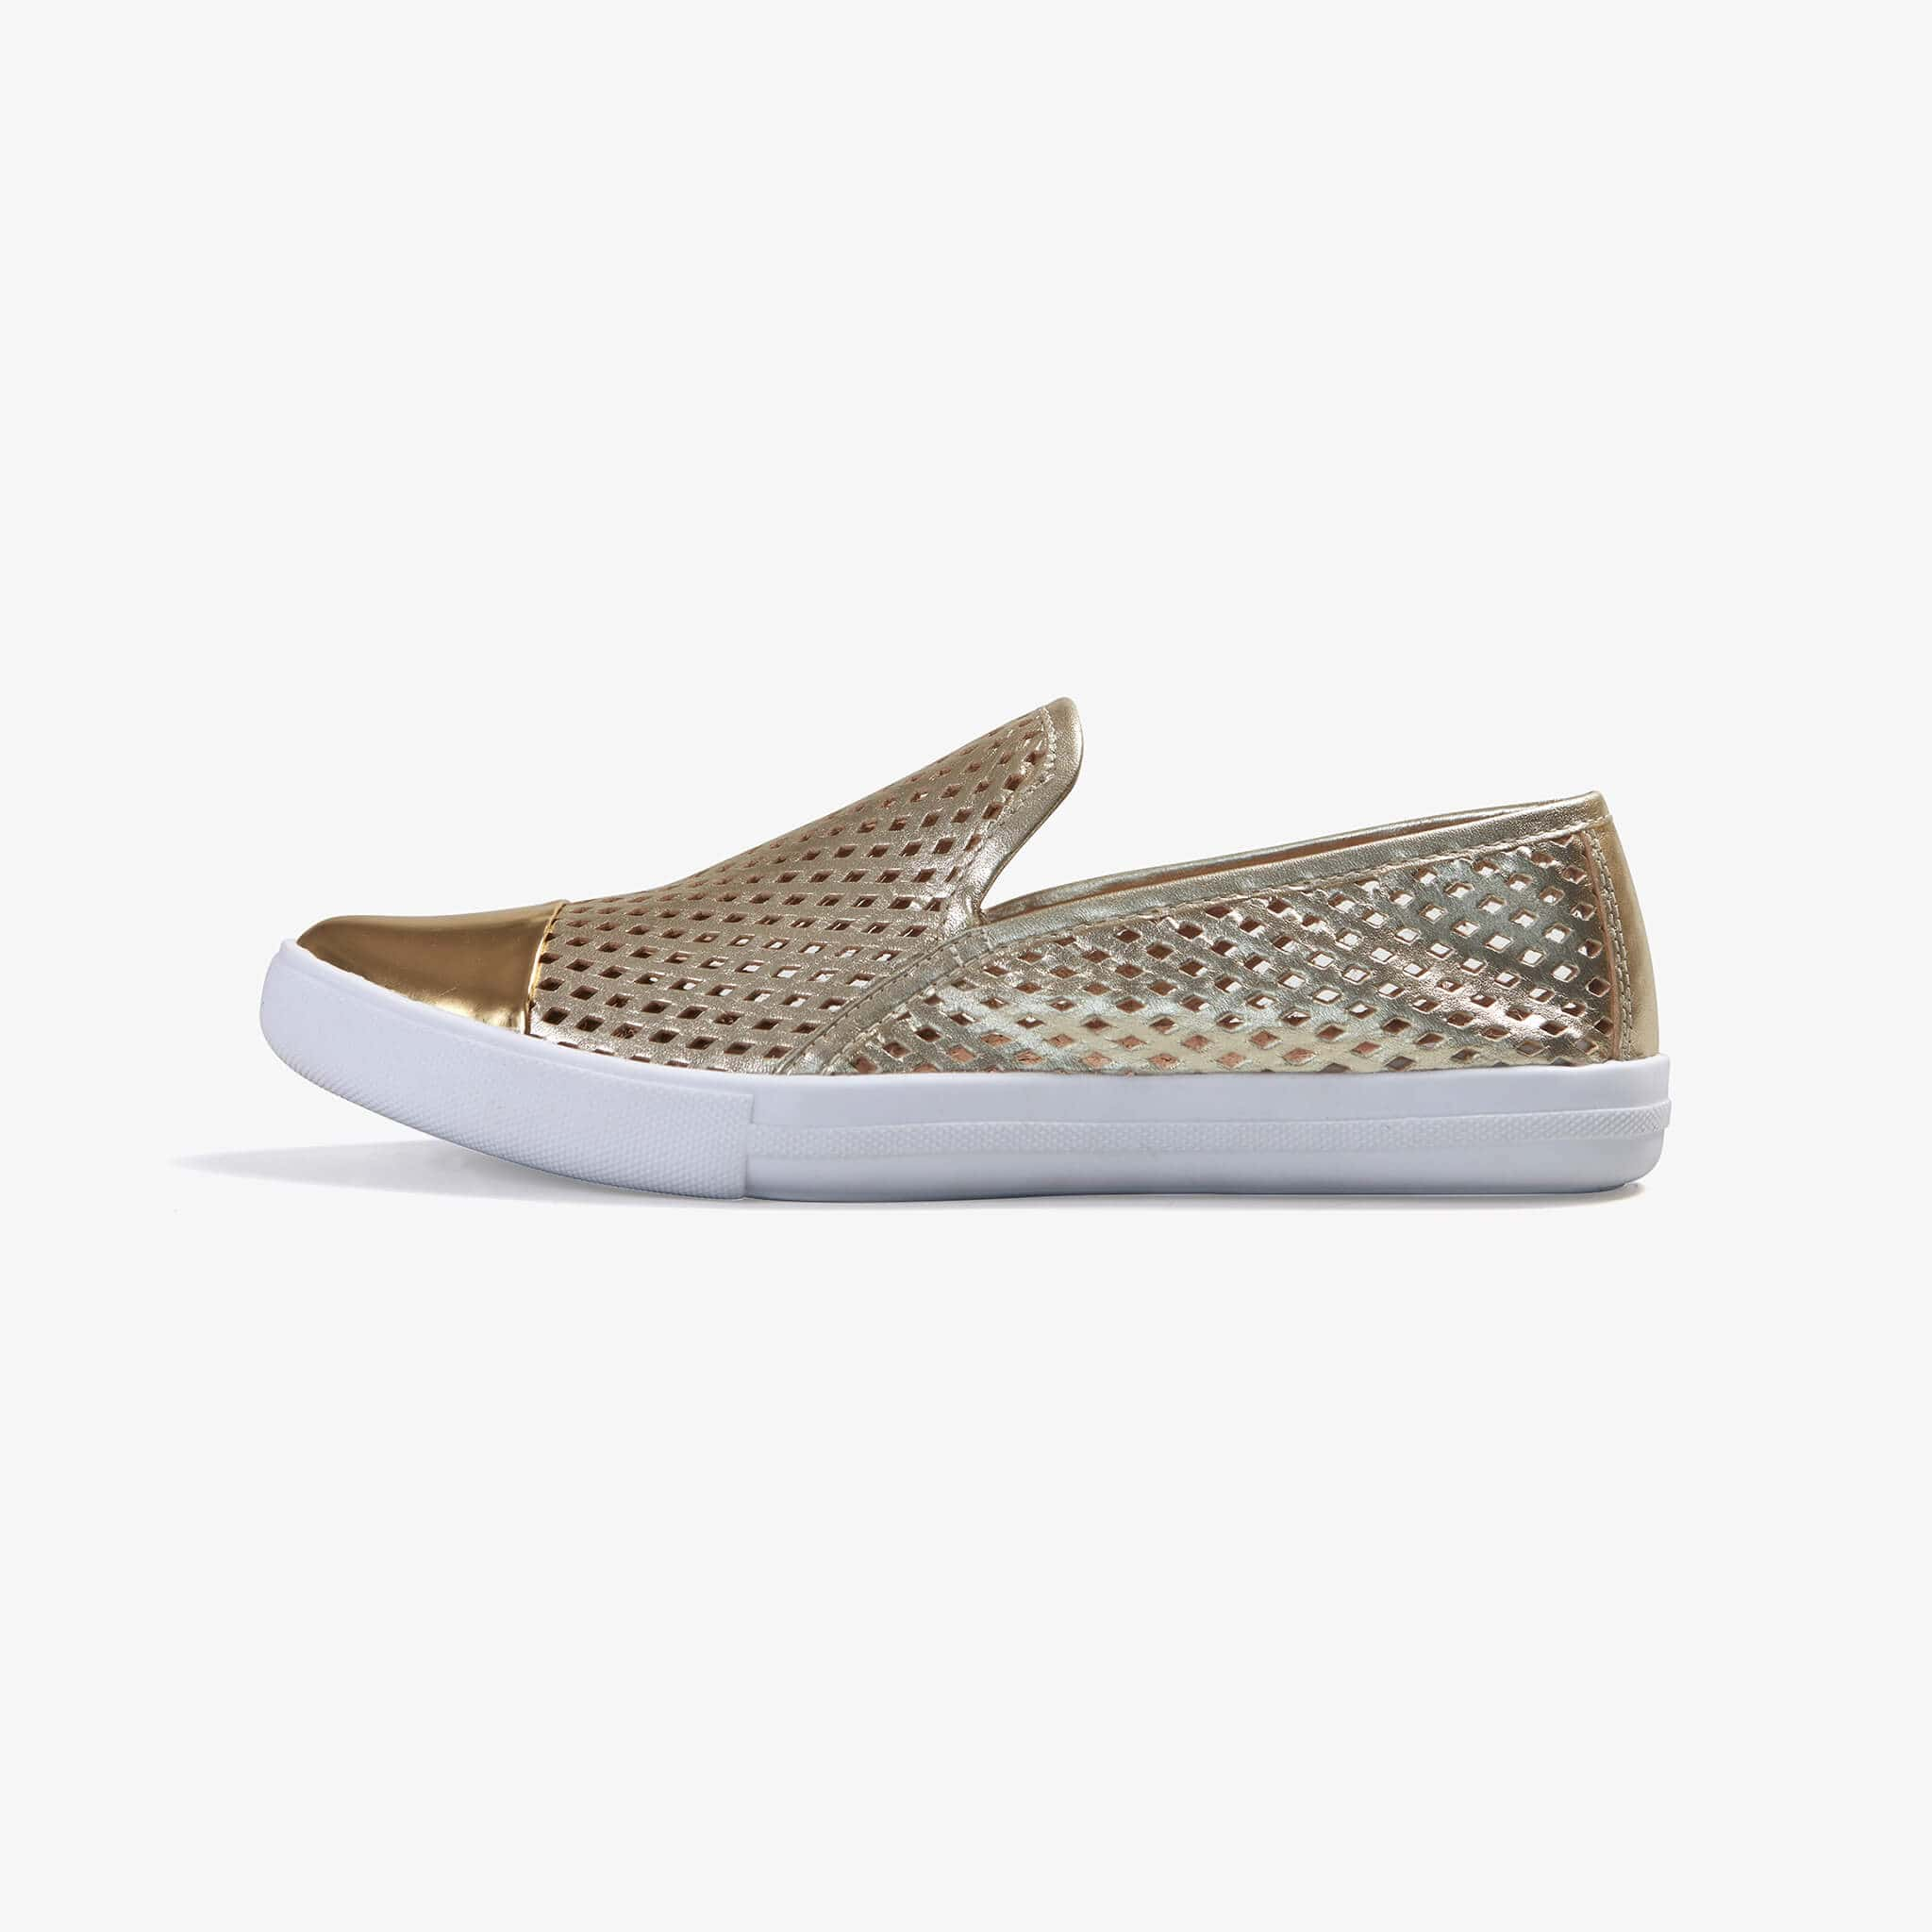 Jibs Slim Gold + Gold Slip On Sneaker Flat Shoe Side